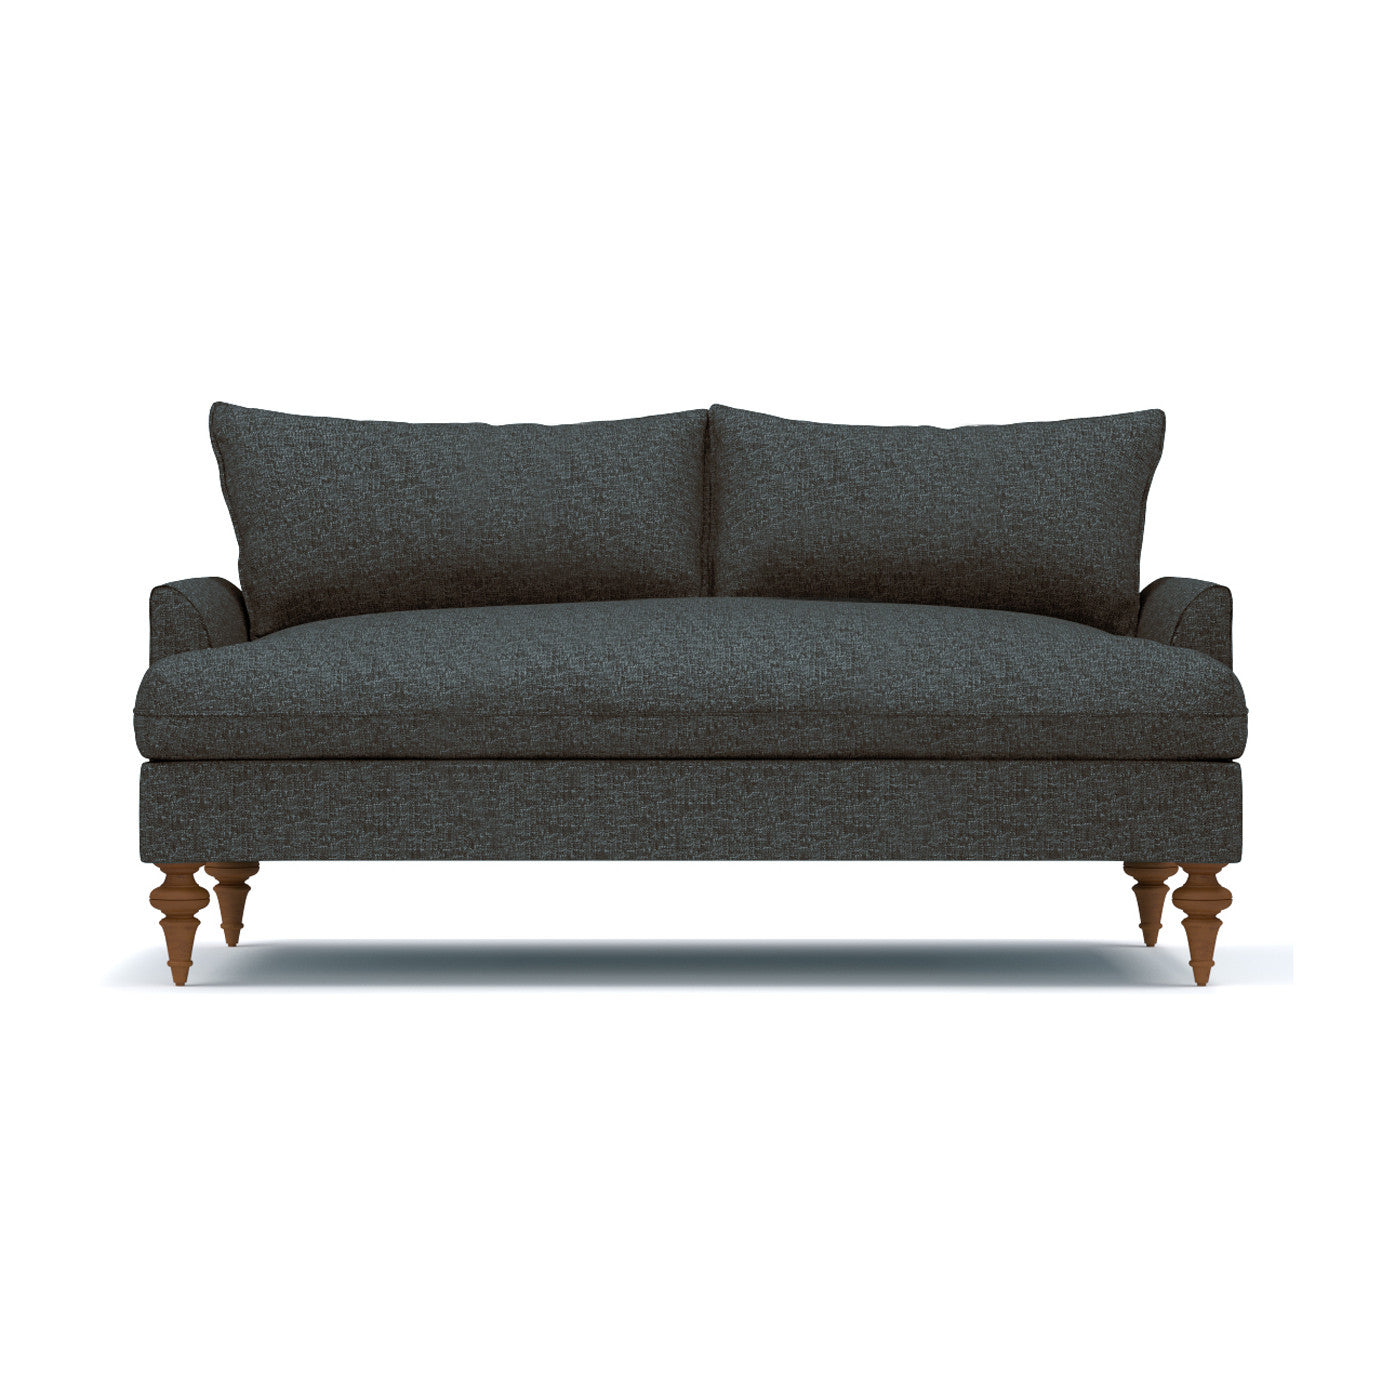 Awesome Saxon Apartment Size Sofa From Kyle Schuneman CHOICE OF FABRICS   Apt2B   13